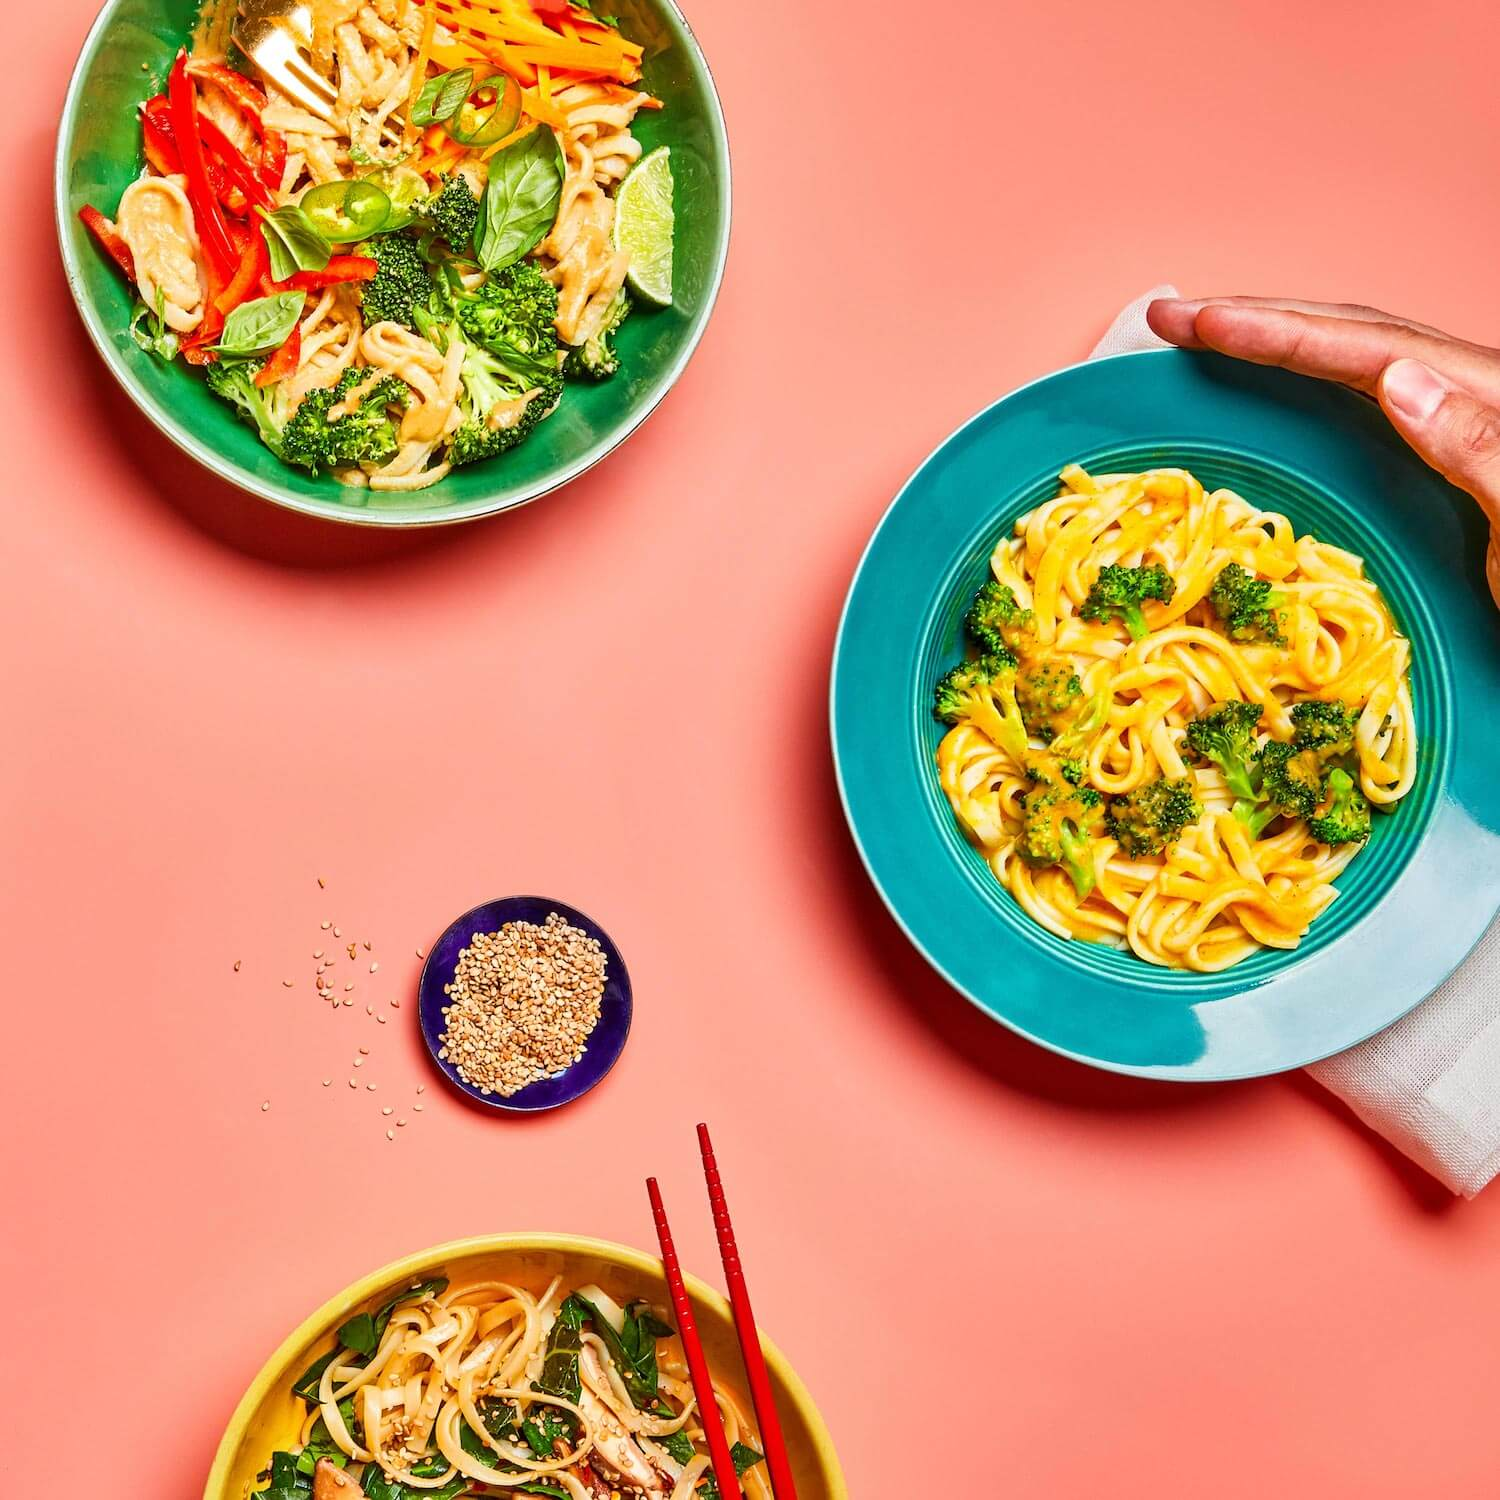 Creamy Butternut Squash Noodles in a dish with 2 other noodle dishes on a peach background.